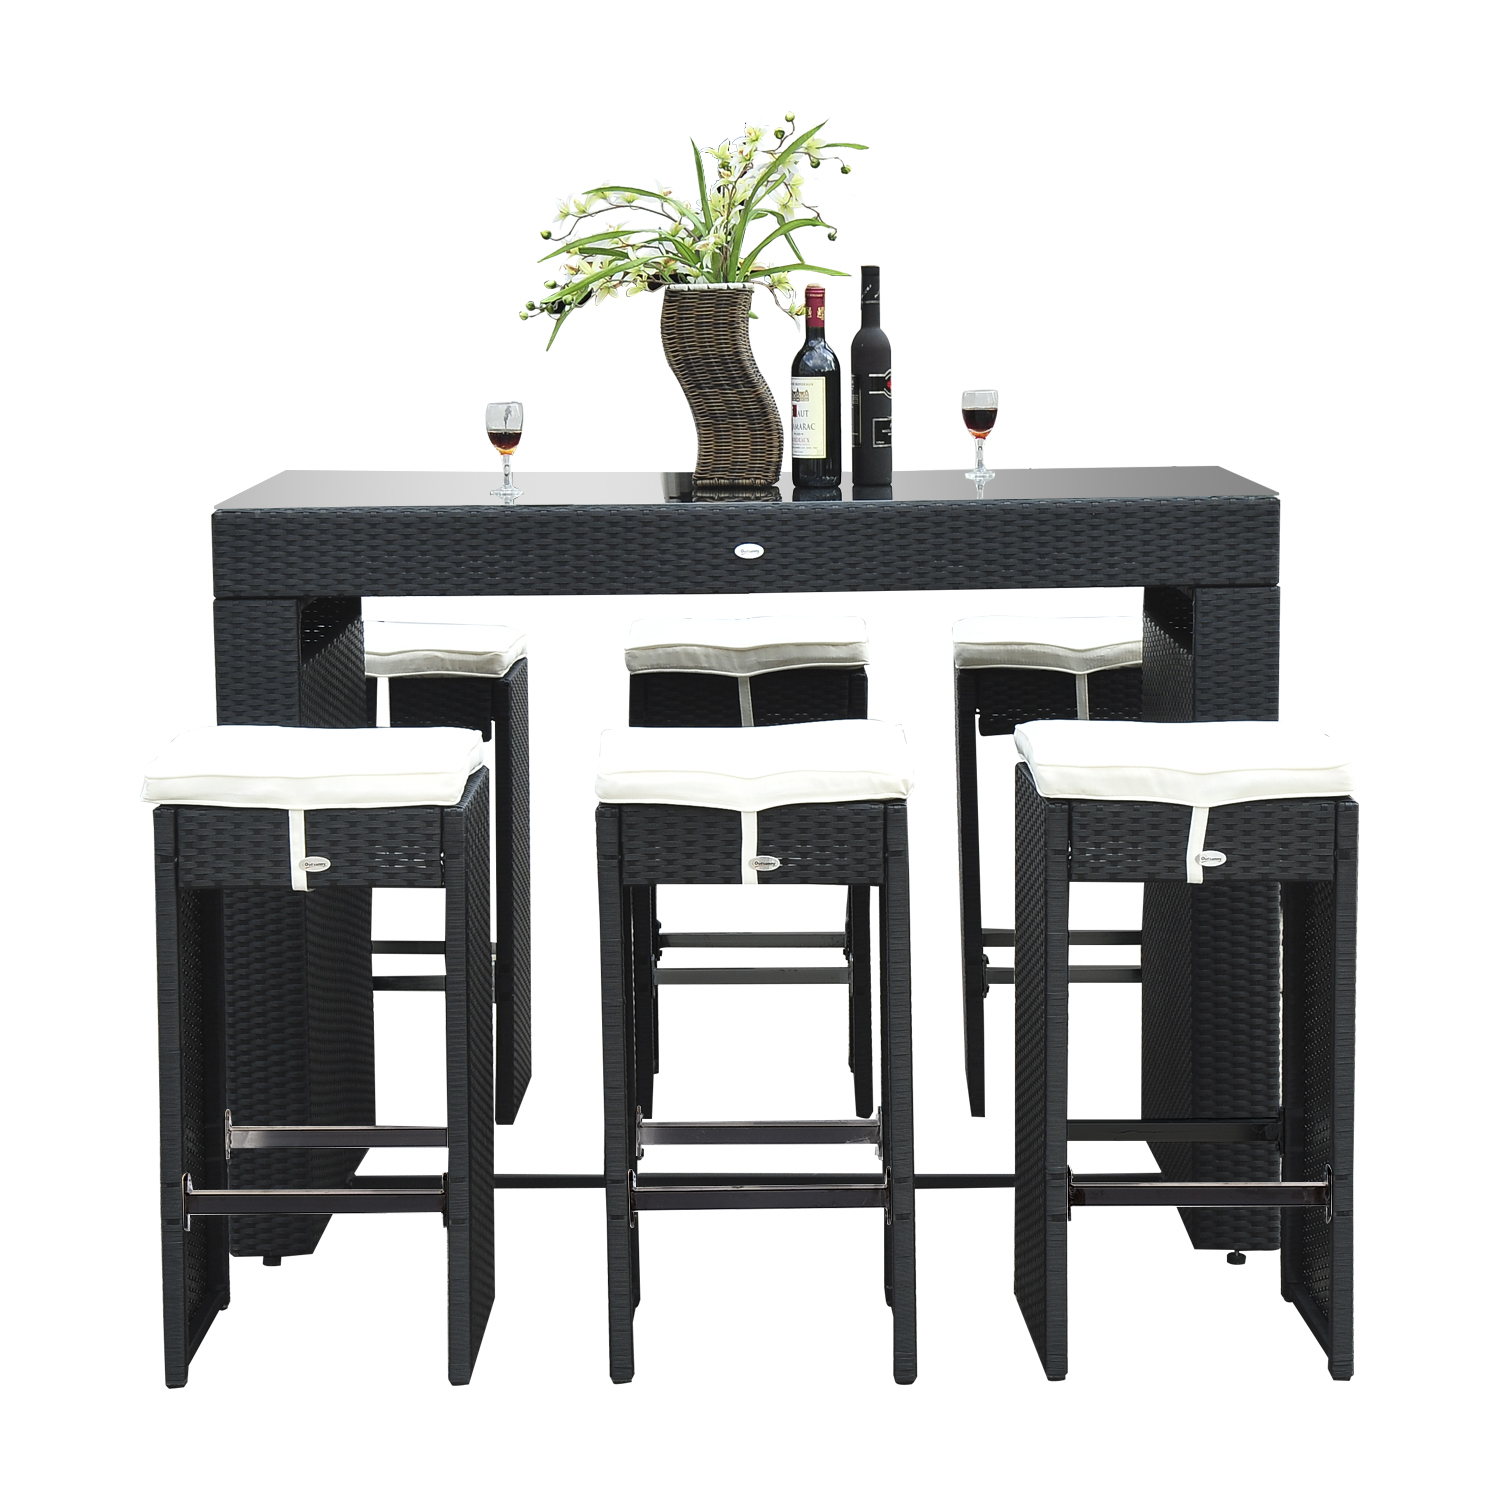 Outsunny 7pc Rattan Wicker Bar Stool Dining Table Set Black Walmart Com Walmart Com